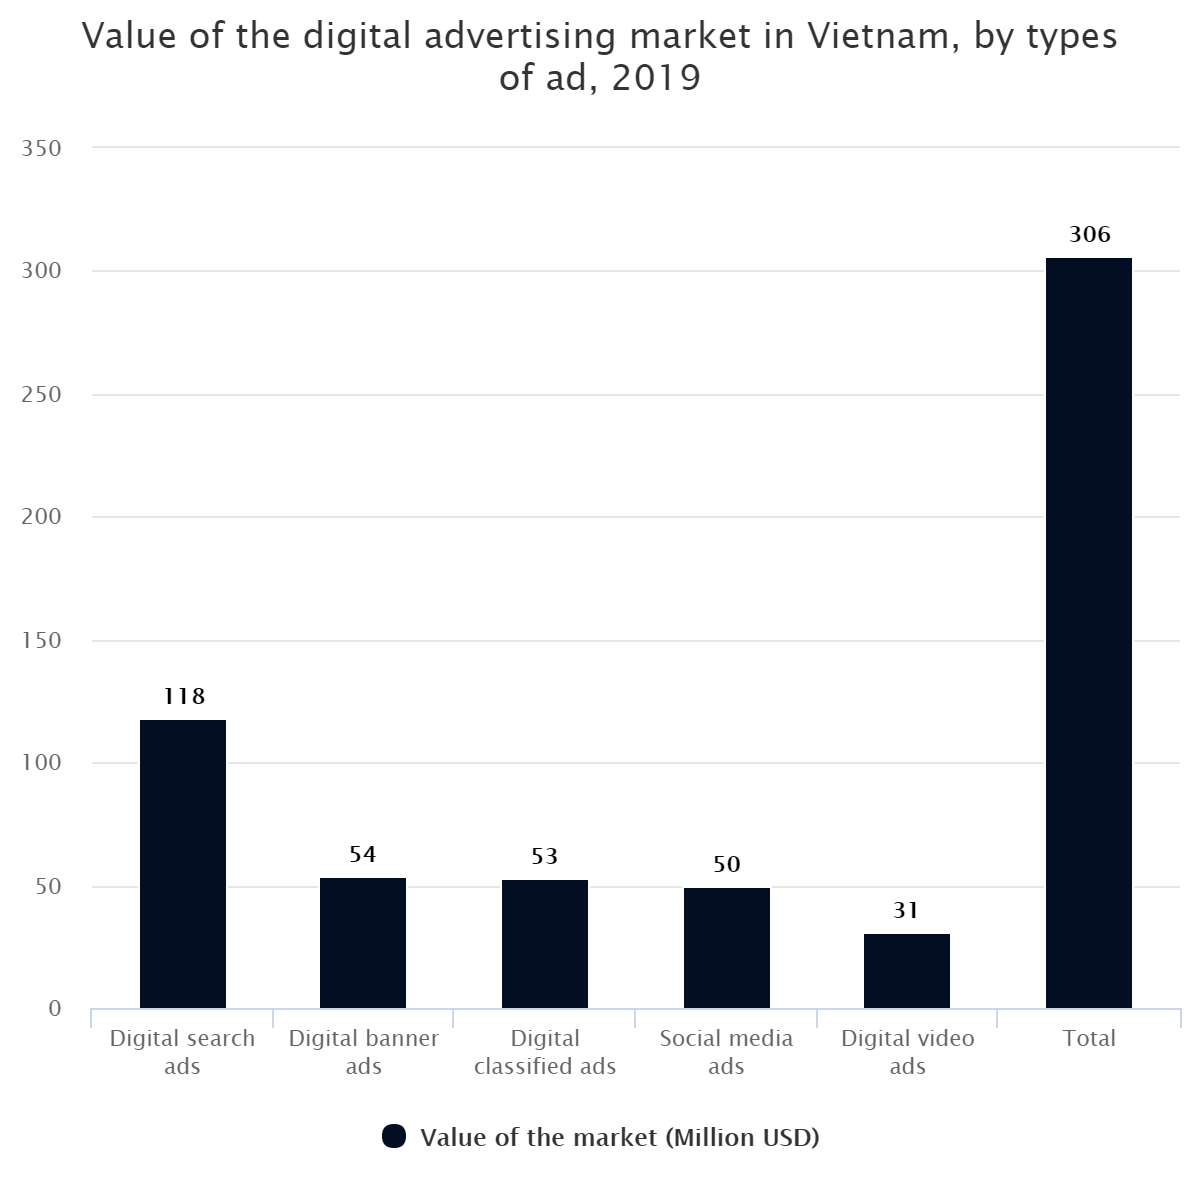 Value of the digital advertising market in Vietnam, by types of ad, 2019